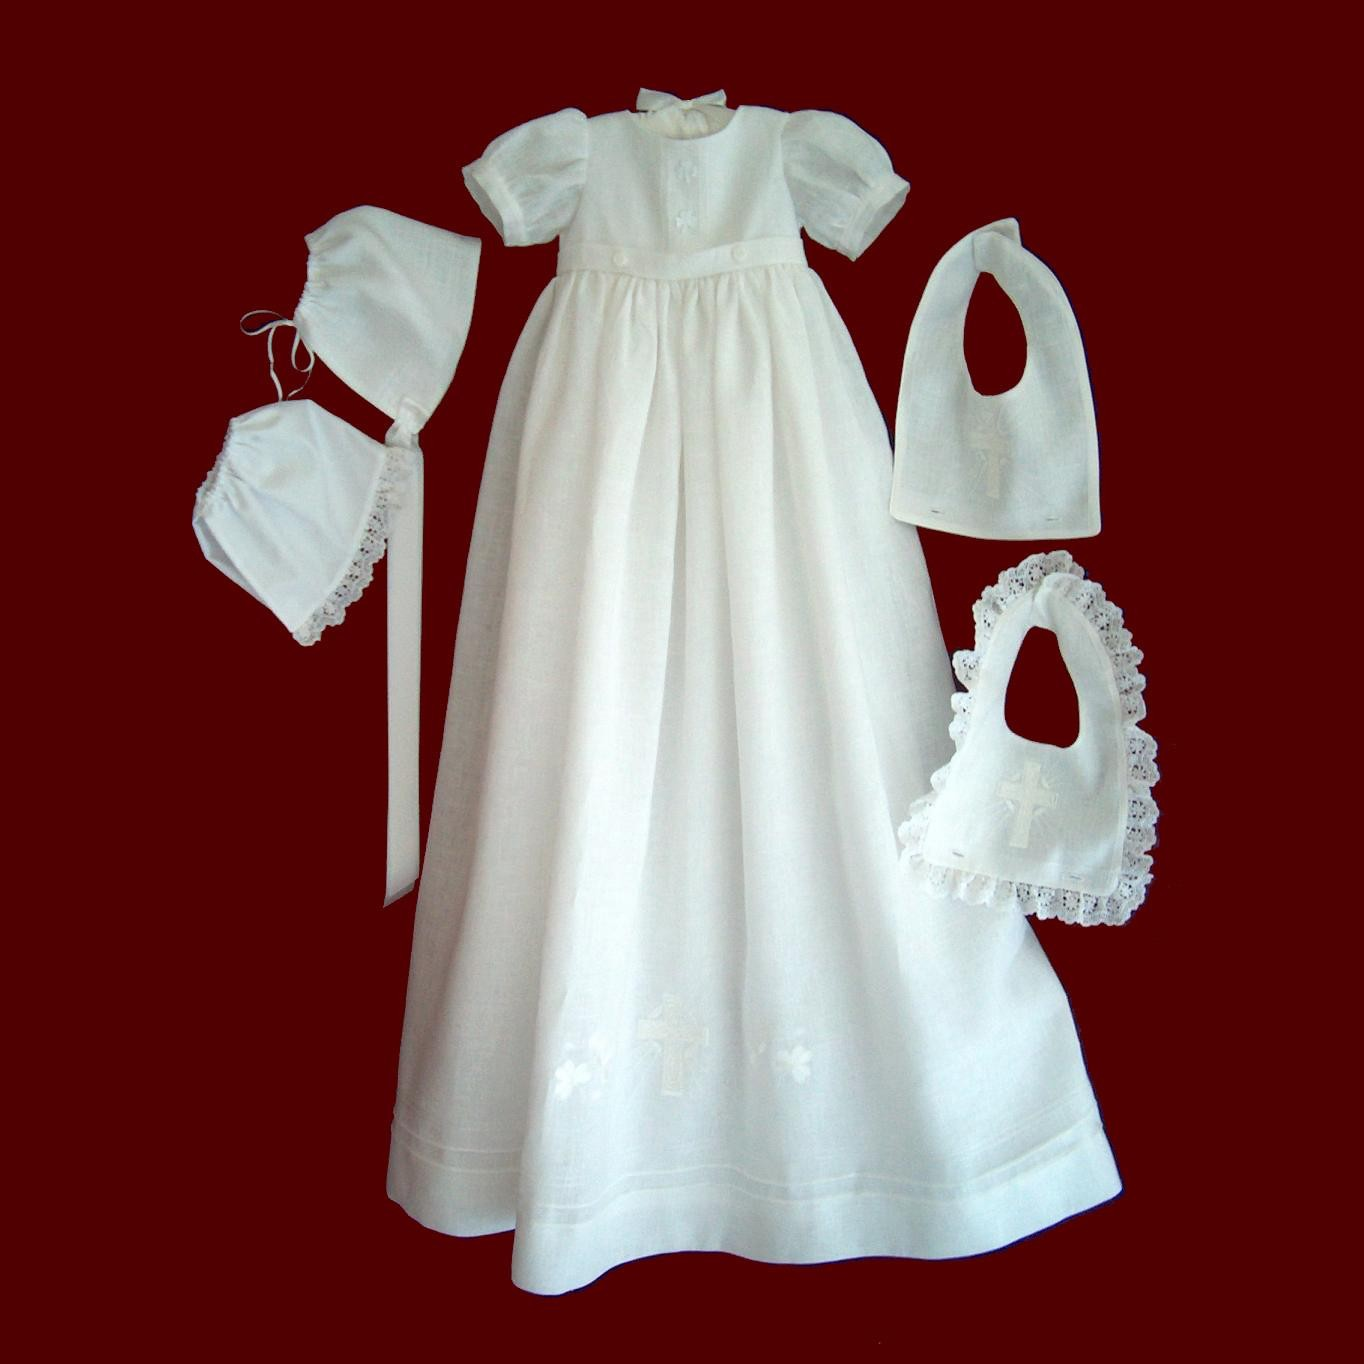 Irish Linen Christening Gown With Boy & Girl Detachable Bibs, Slip & Bonnet